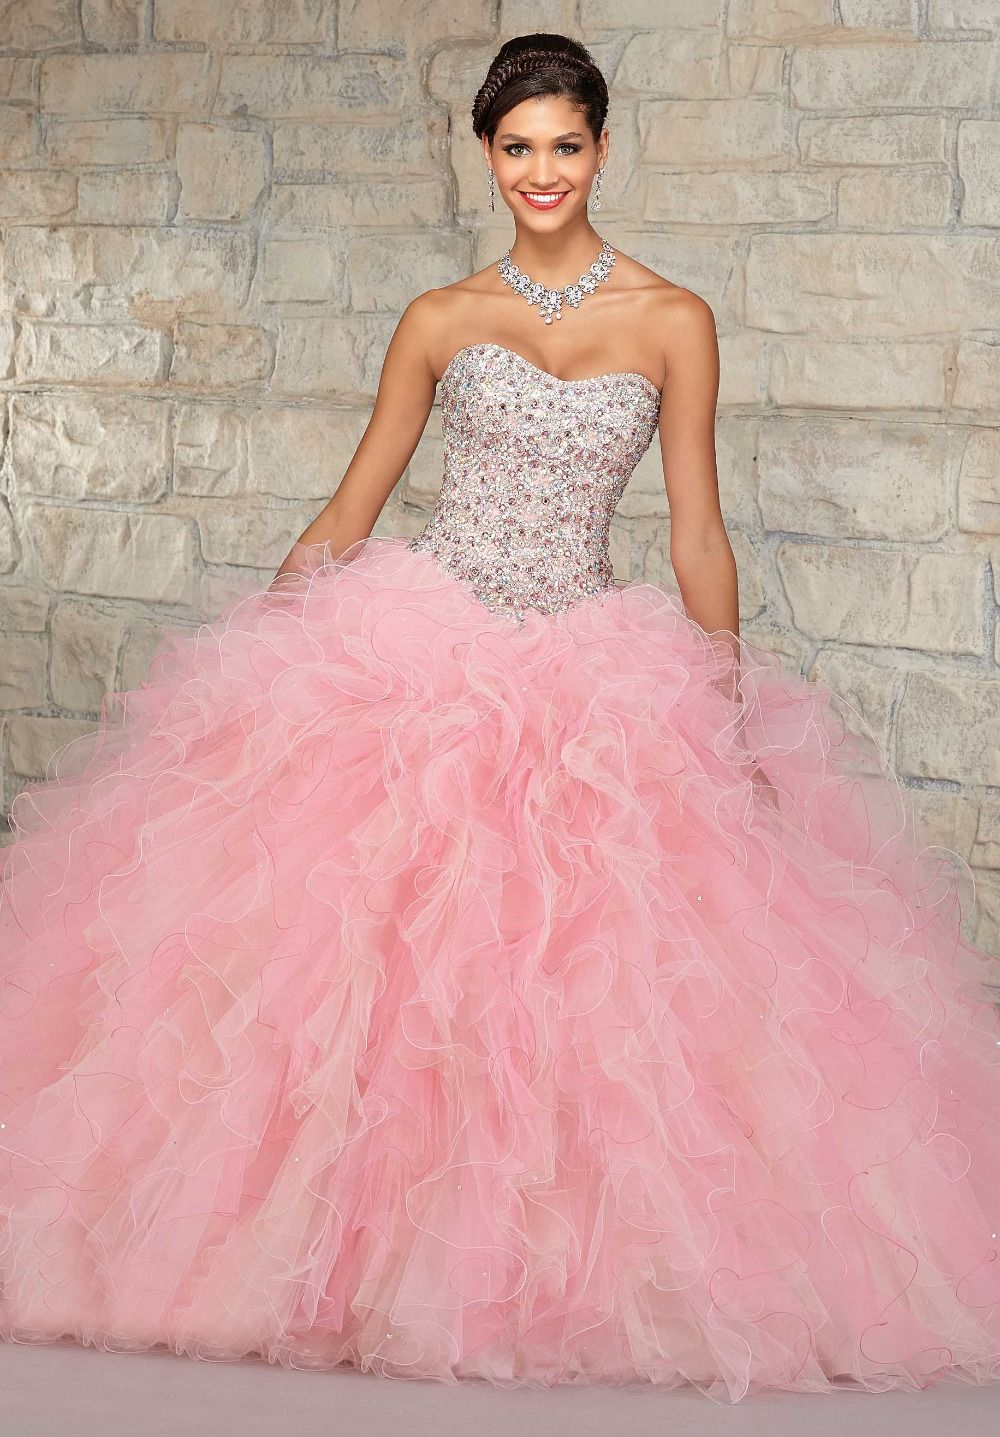 Elegant-Ball-Gown-Ruffled-Organza-Skirt-Beaded-Crystals-Top- | Pink ...